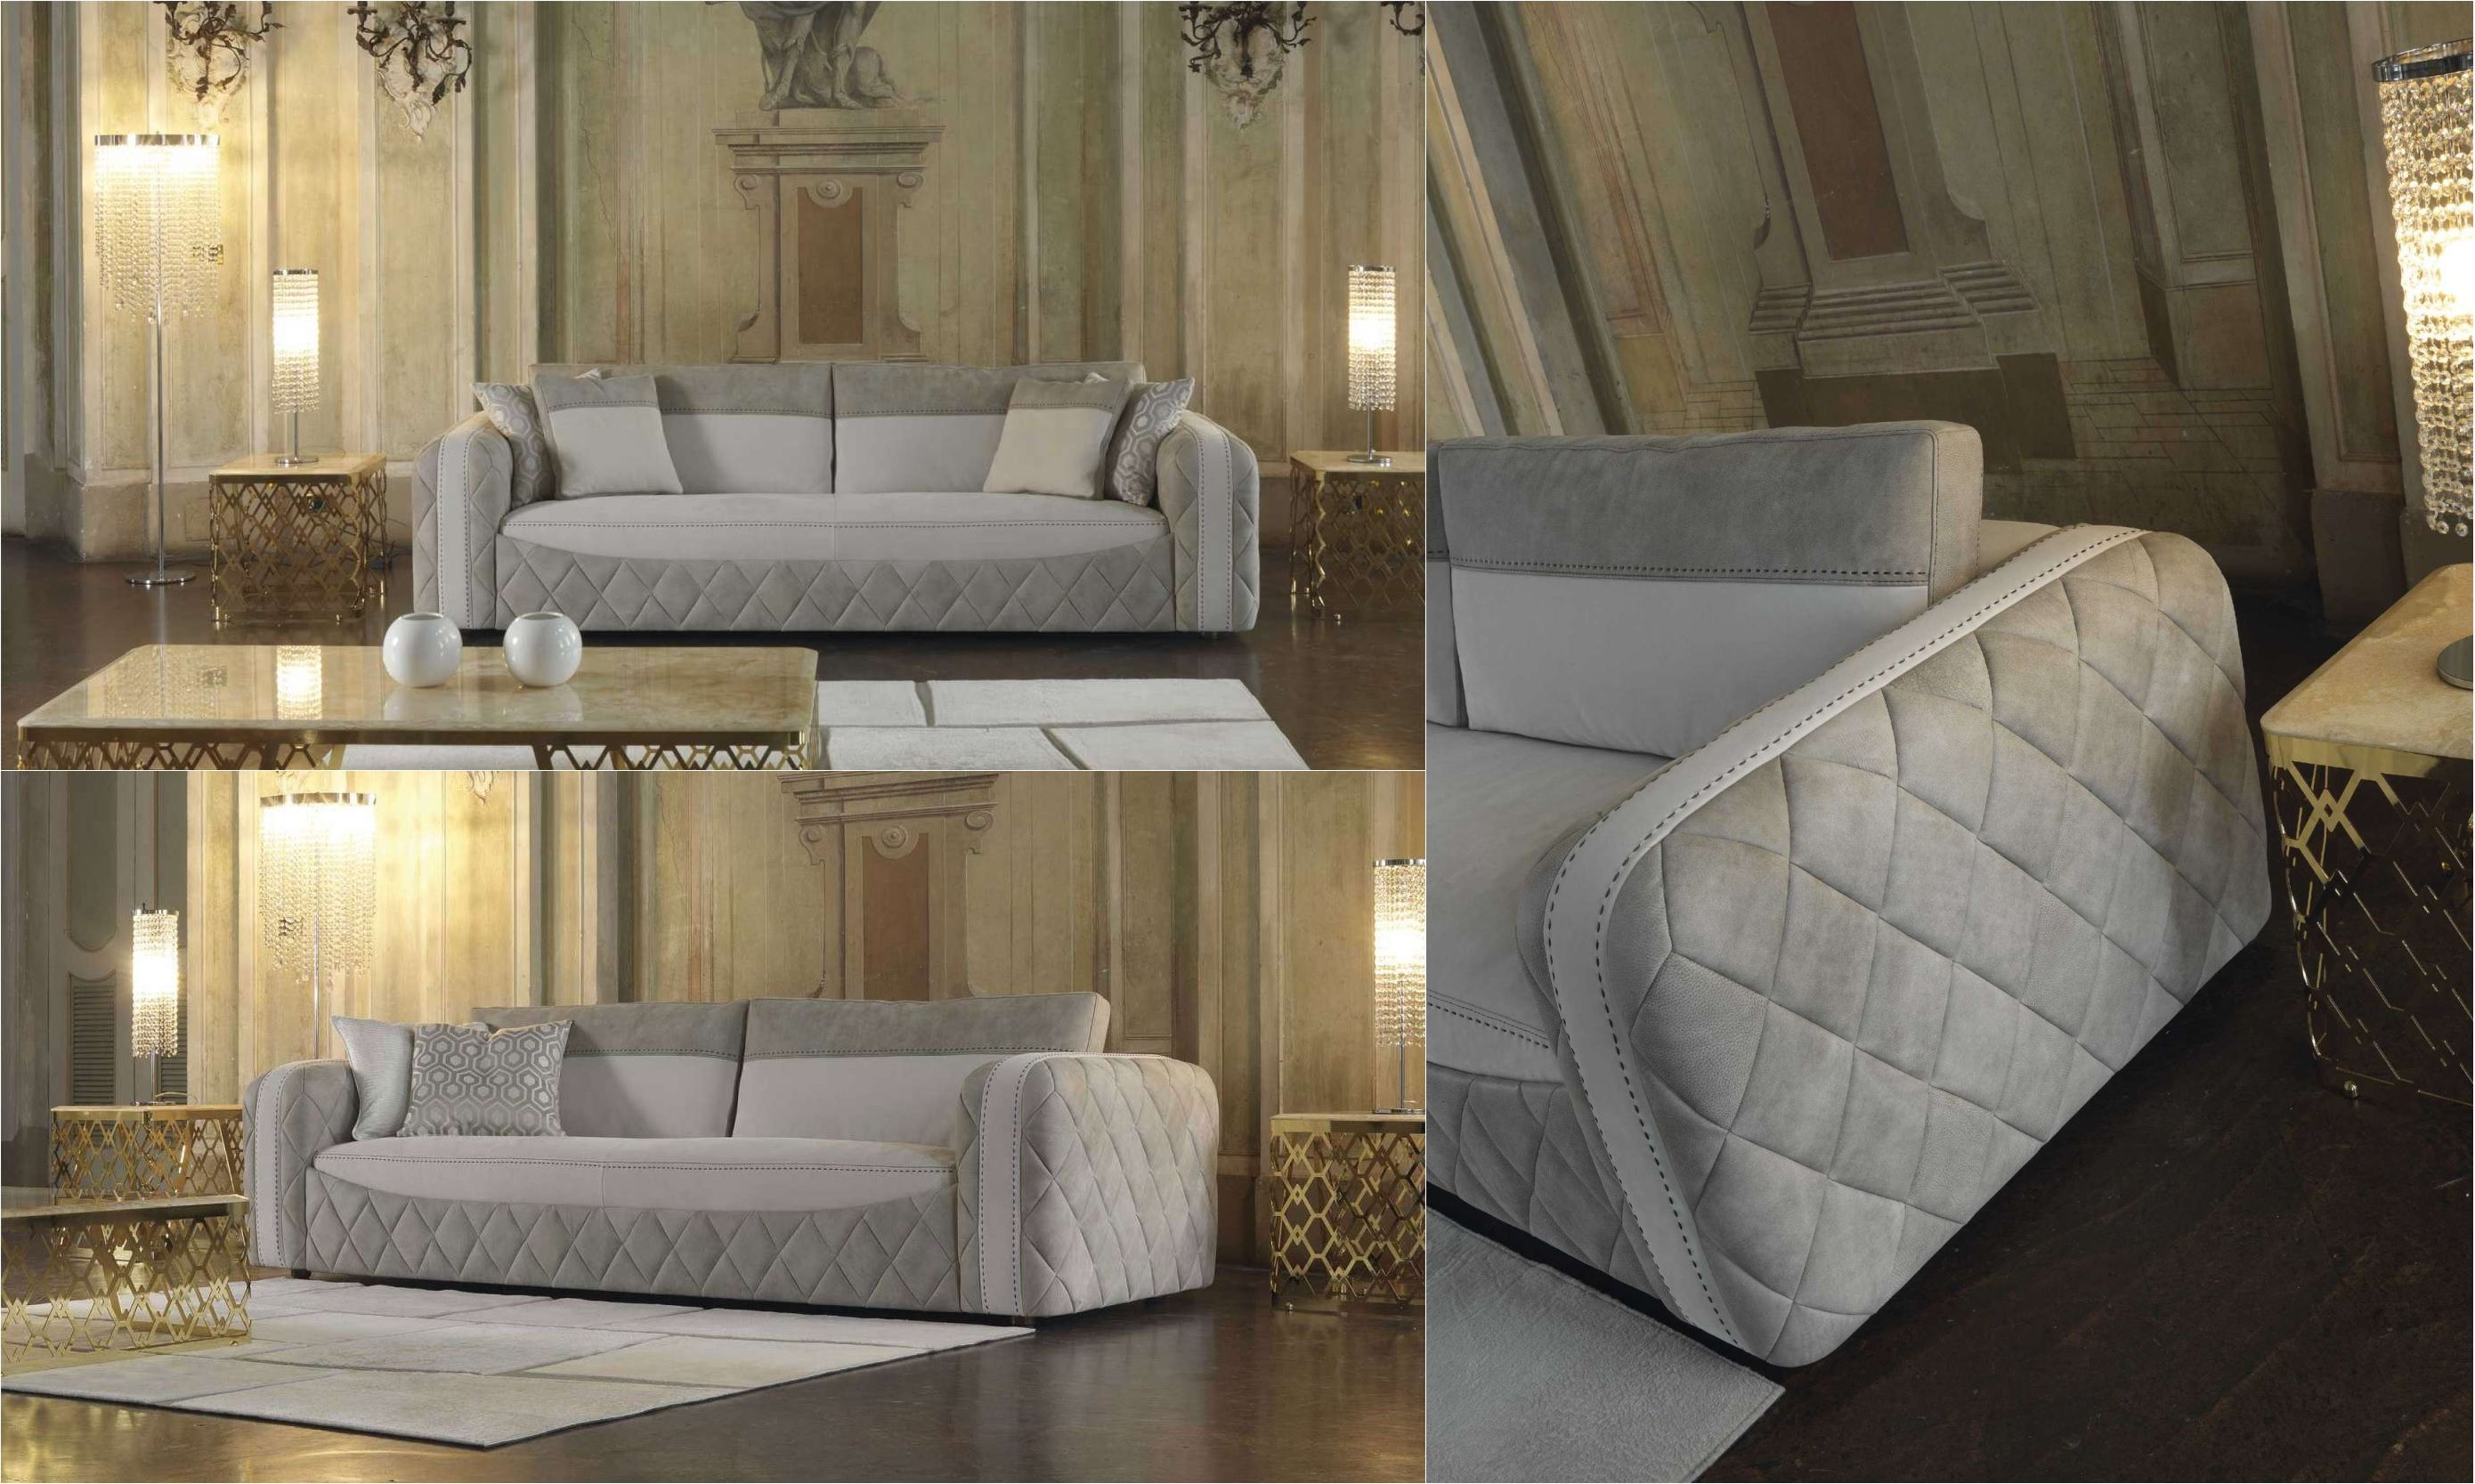 PRINCE Collection GLAMOUR sofa by Formenti Divani